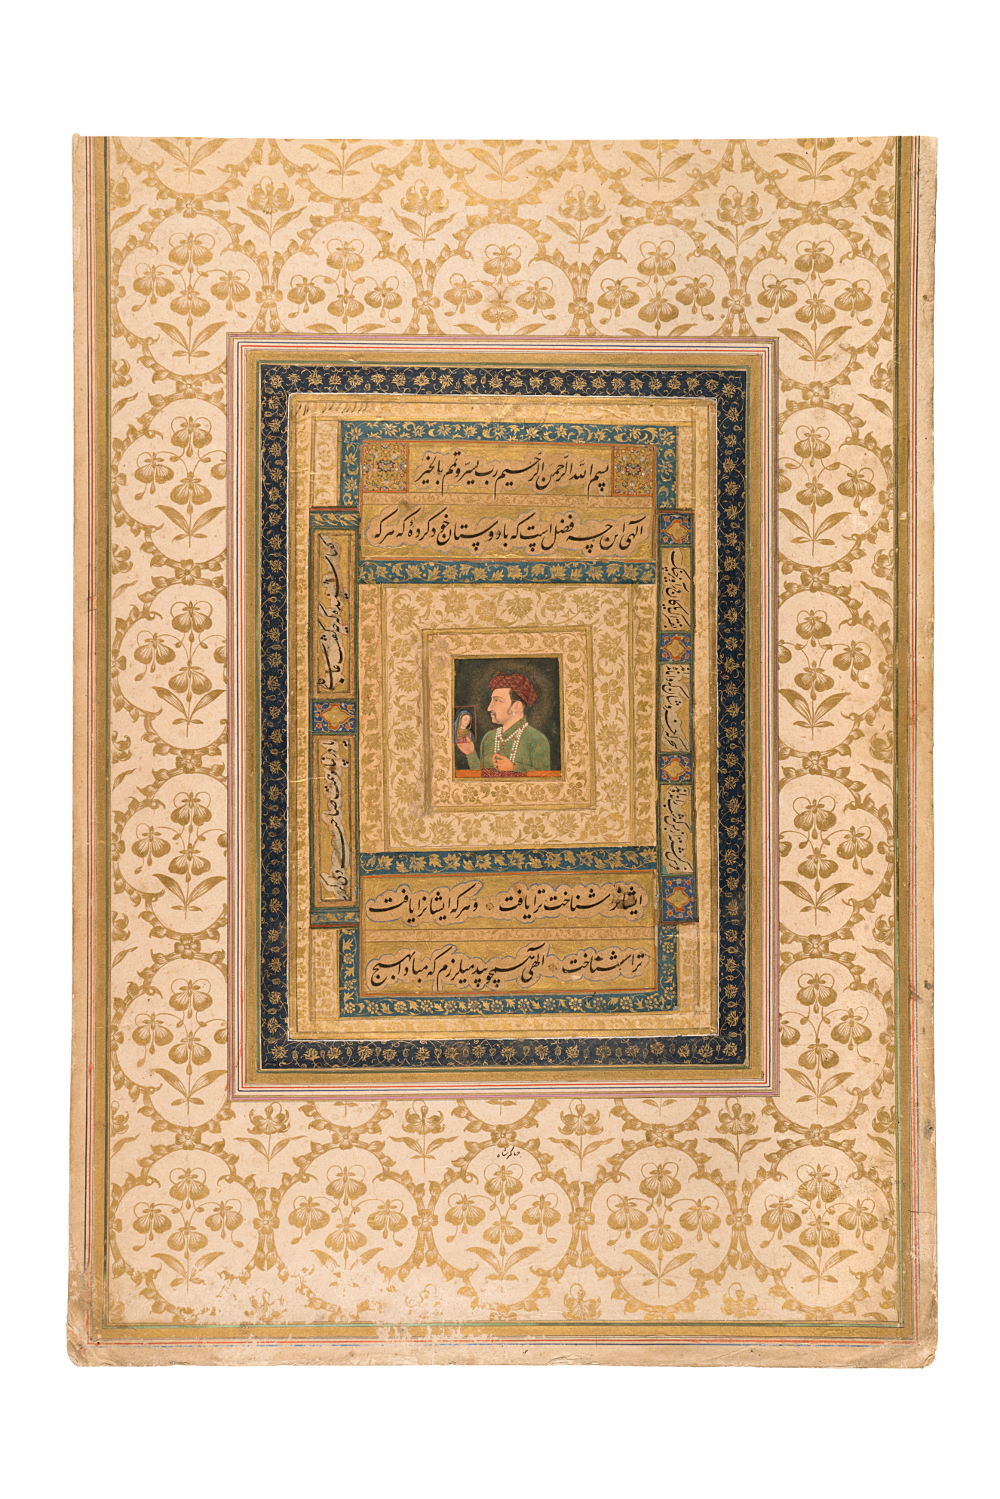 Jahangir holding a portrait of the Virgin Mary - Opaque watercolour and gold on paperAbout AD 1620Probably Agra, Uttar Pradesh, IndiaNational Museum, New DelhiThis portrait of the Mughal Emperor Jahangir (1569–1627), shows him holding an icon of the Virgin Mary, while a golden halo of light radiates around him. Poetic inscriptions, around the side of the painting, ask for strength and protection for Jahangir to face the surrounding darkness and rise to the challenges of kingship. Maryam (the Virgin Mary) occupies a prominent place among the women in the Qur'an and became an epithet for Mughal queens.